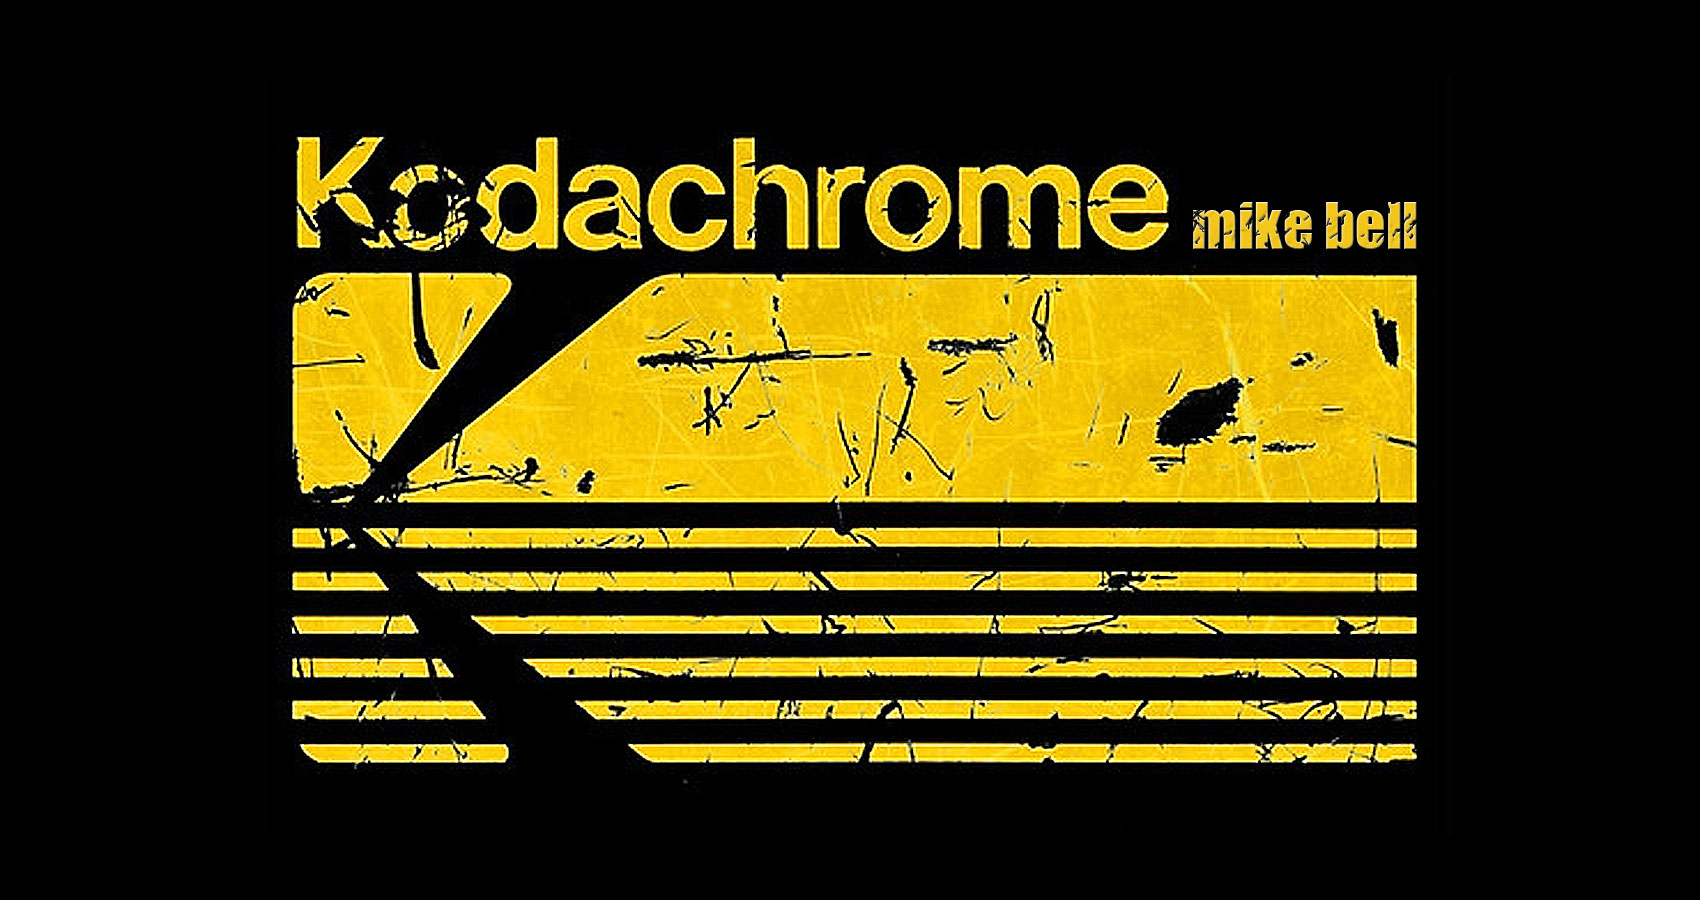 Kodachrome by Mike Bell at Spillwords.com